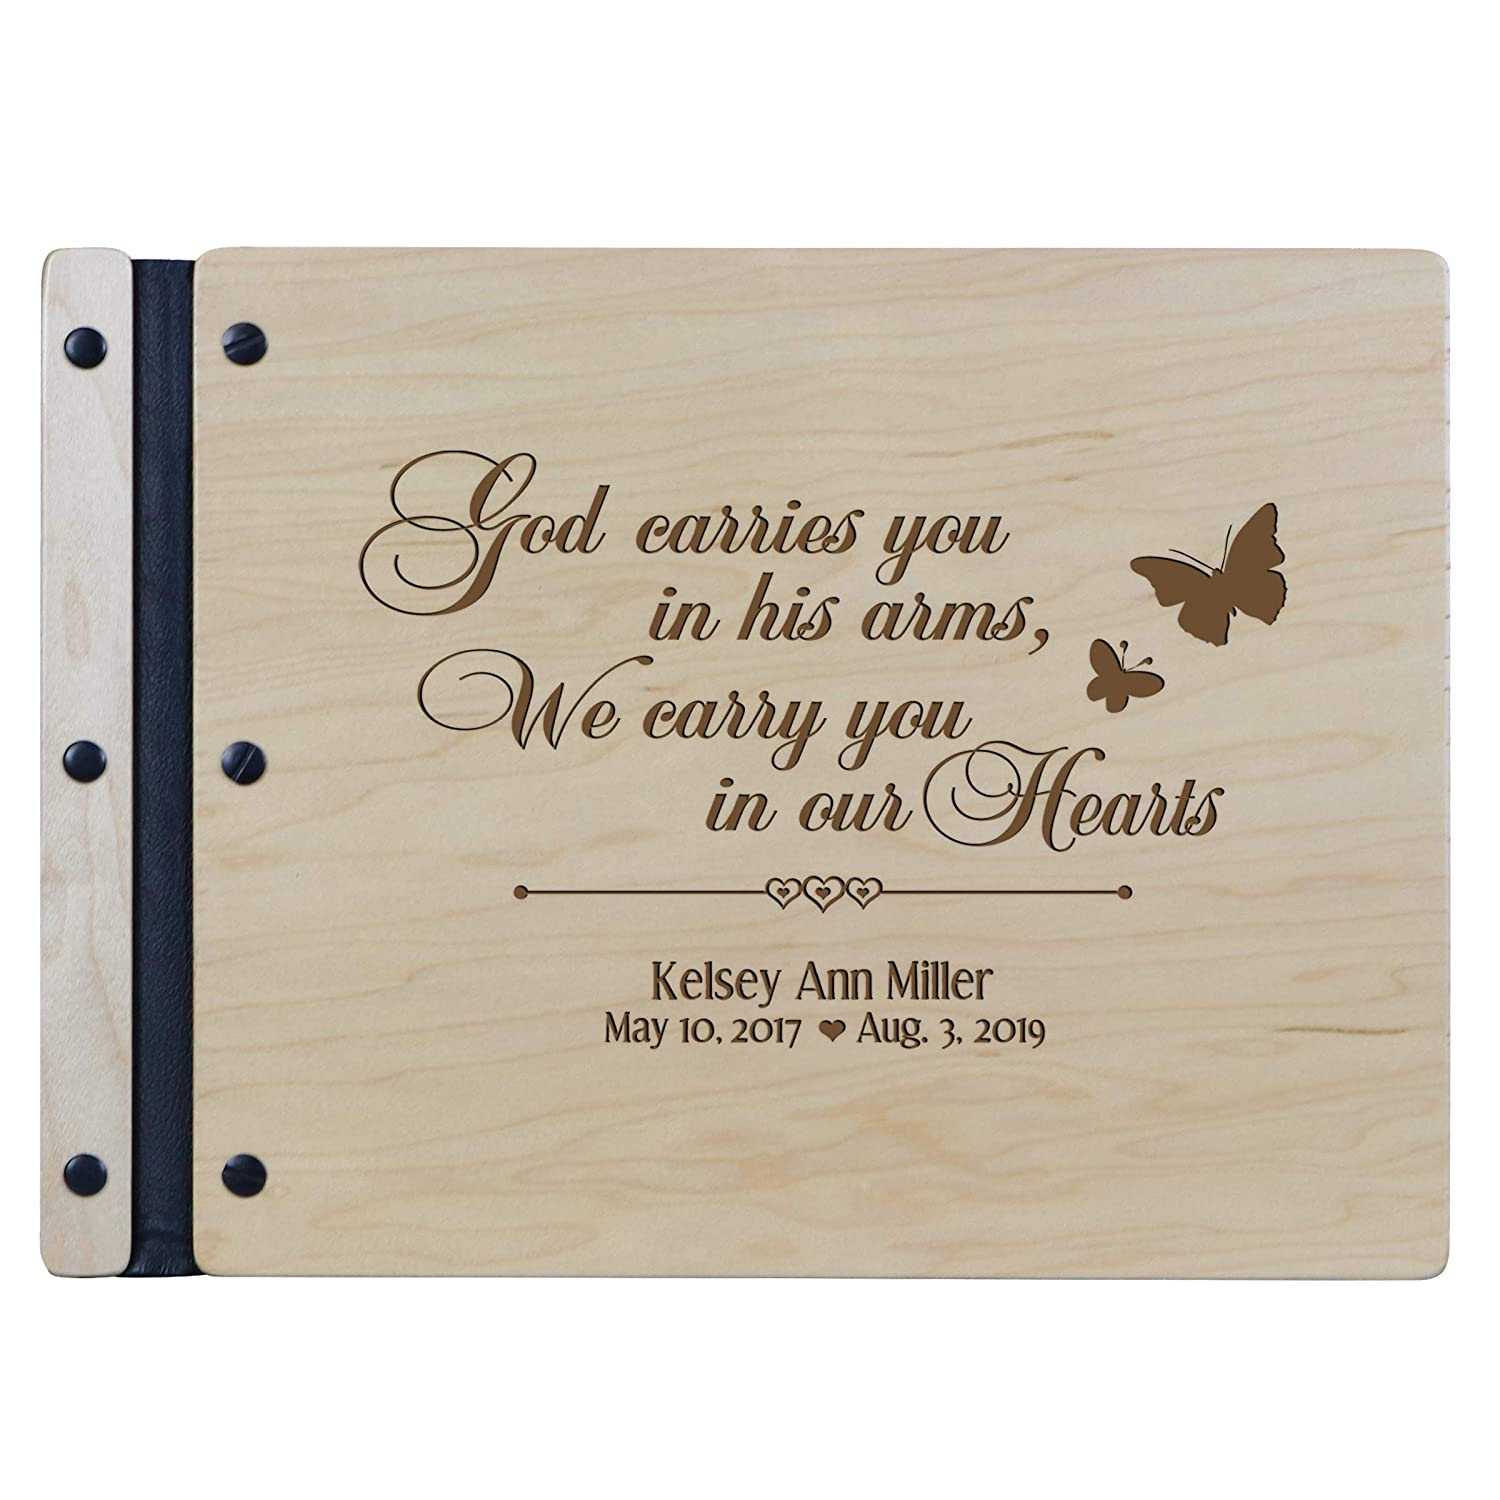 LifeSong Milestones Engraved Personalized Solid Cherry Wood Memorial Sympathy Ceremony Guest Book for Funeral Service Loss of Loved e Celebration